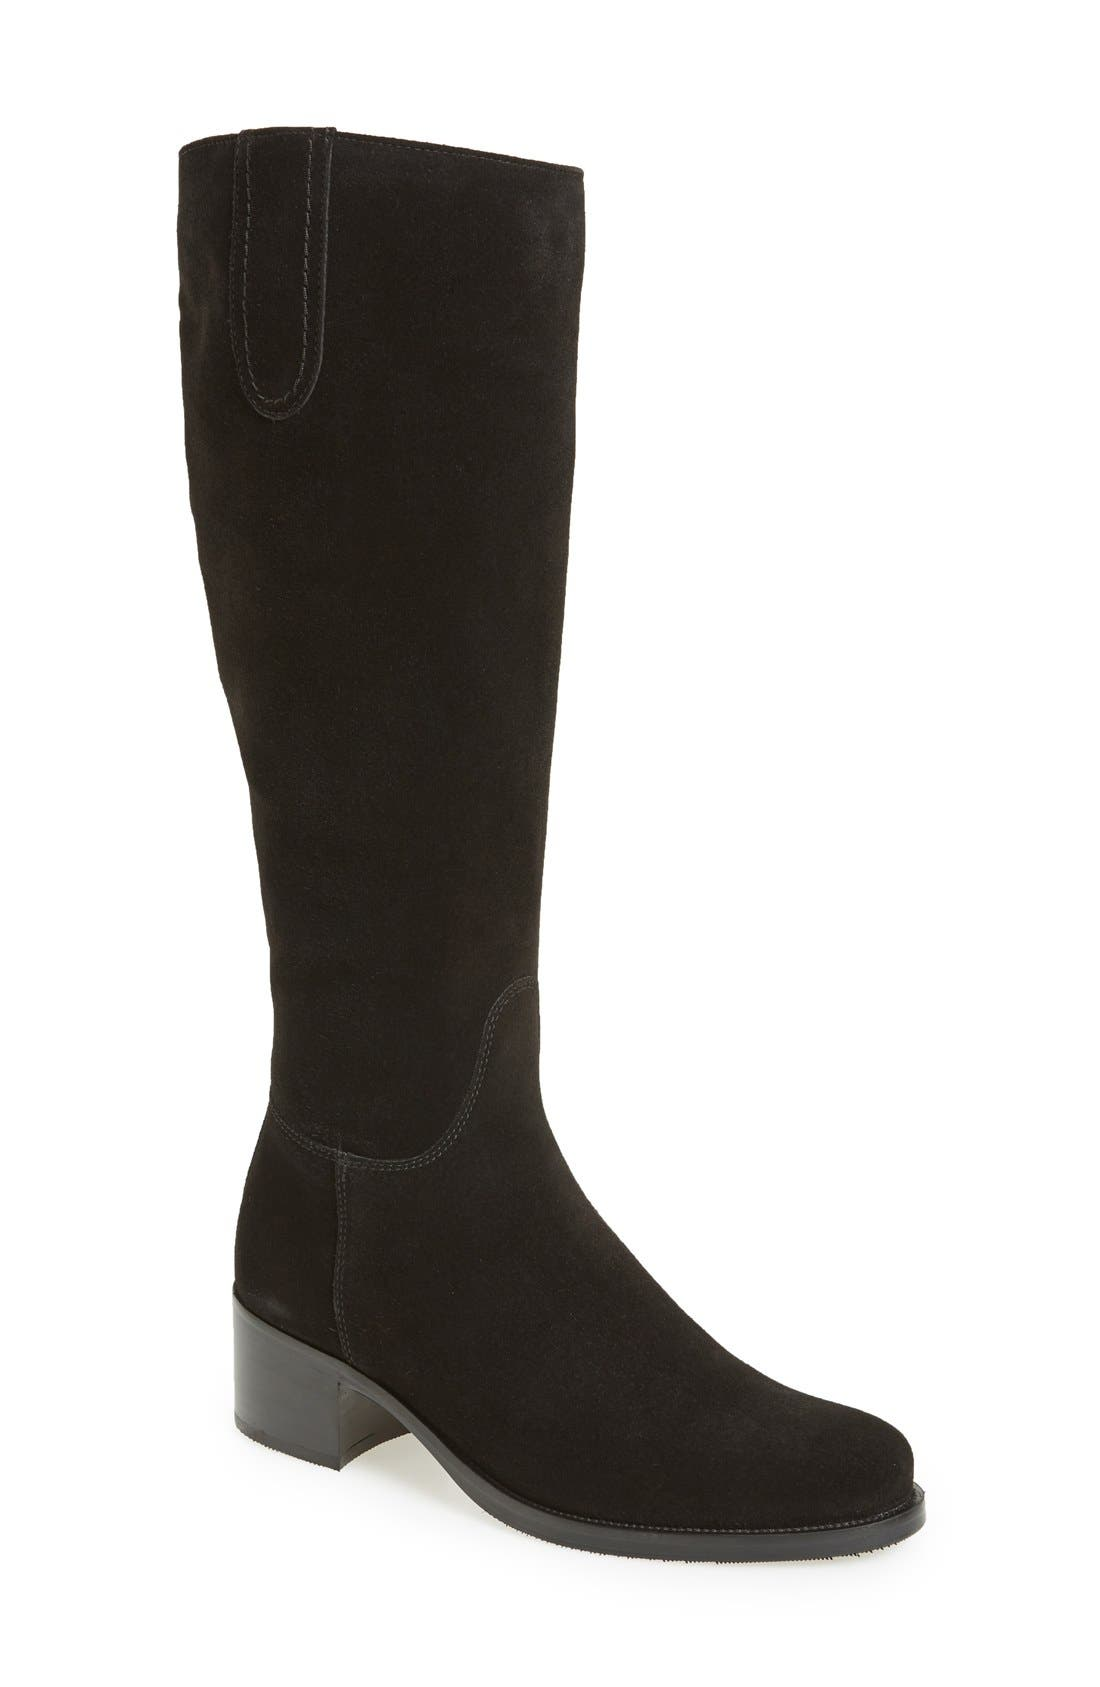 LA CANADIENNE, 'Polly' Waterproof Knee High Boot, Main thumbnail 1, color, BLACK SUEDE